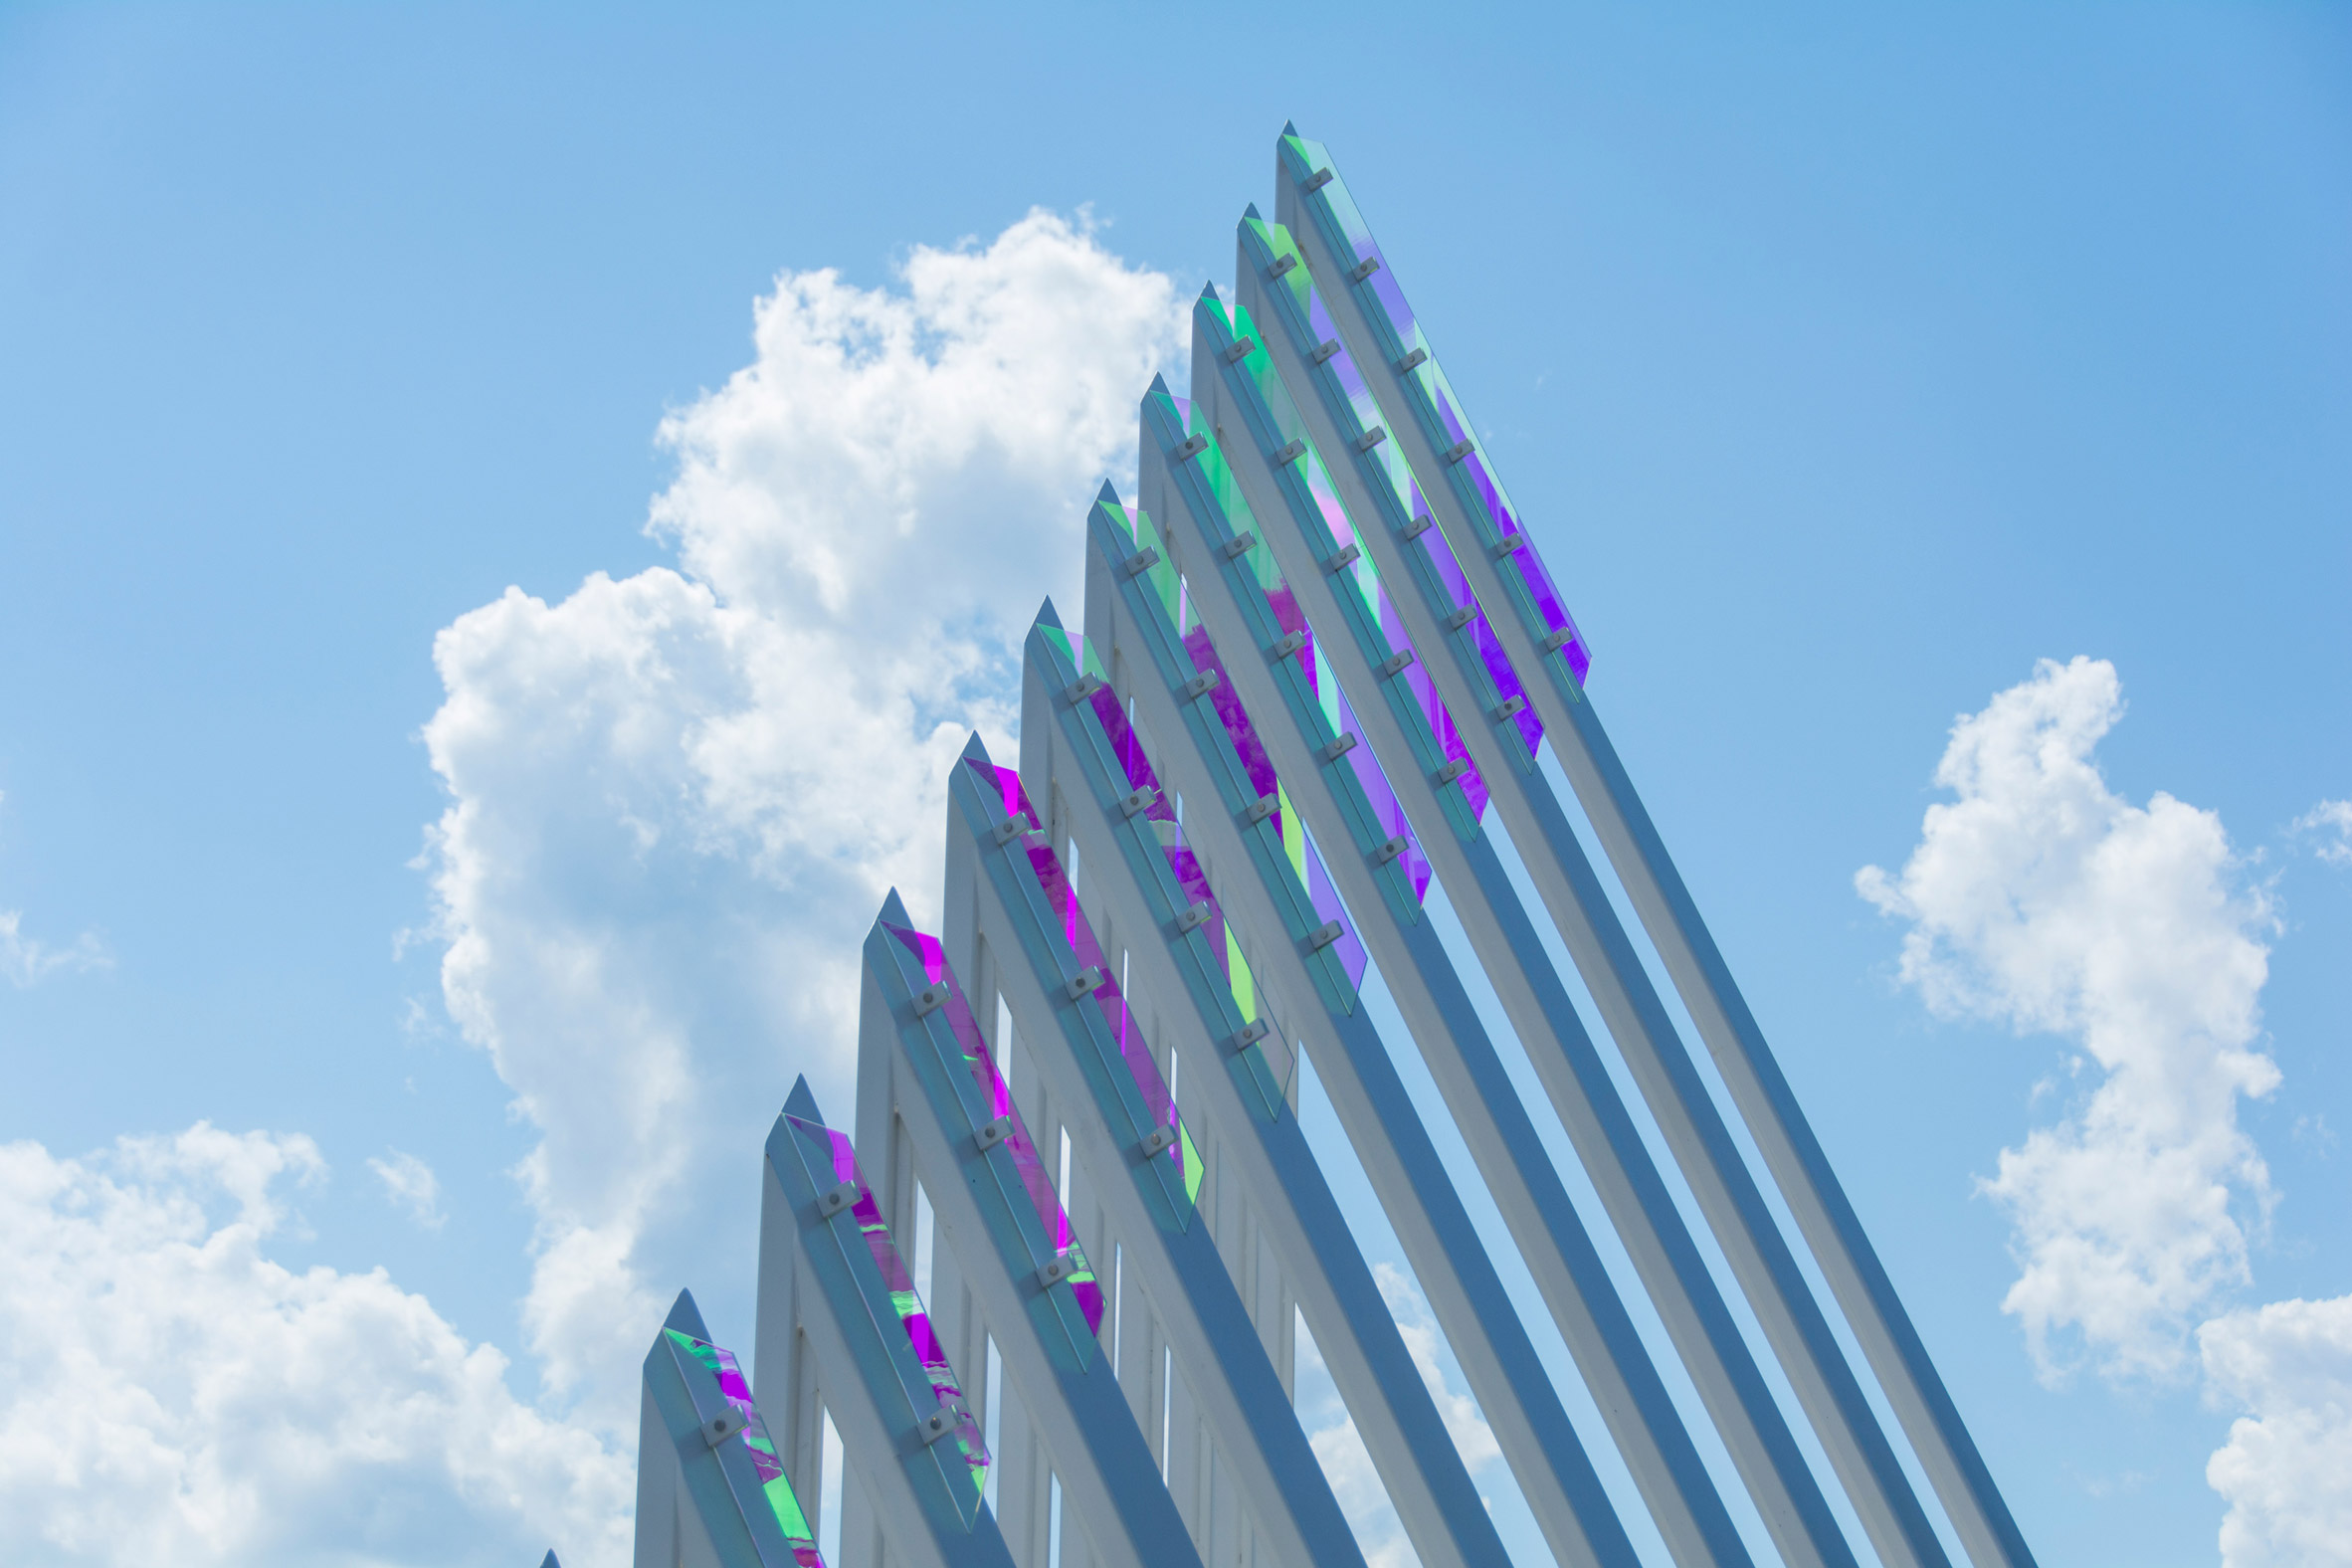 Glass fins refract colourful light during the day